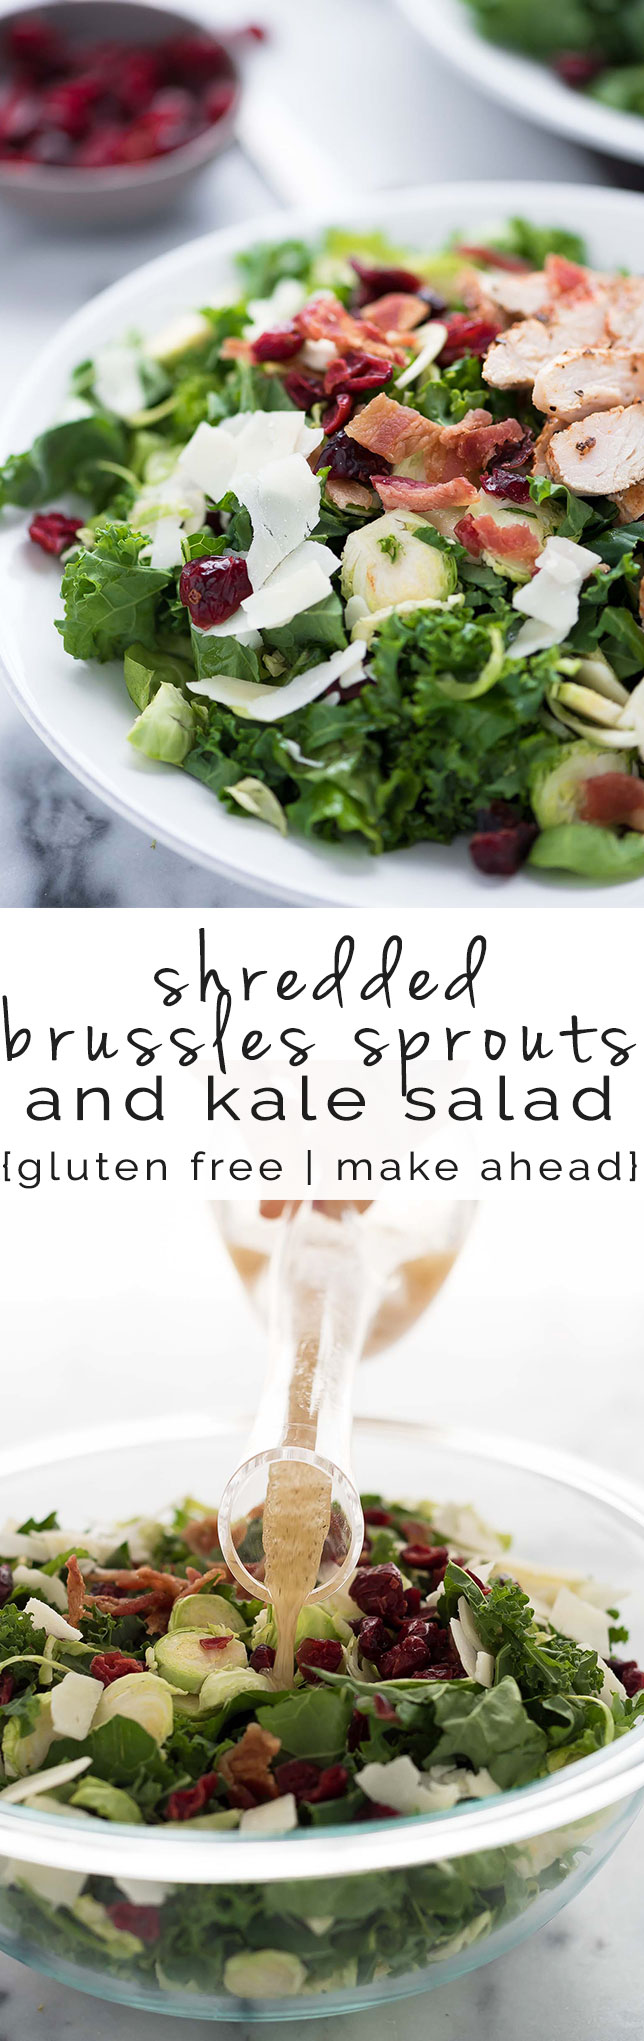 Shredded Brussels Sprouts salad, with bacon, healthy, cranberries, recipe, gluten free, dried cranberries, cheese, parmesan,